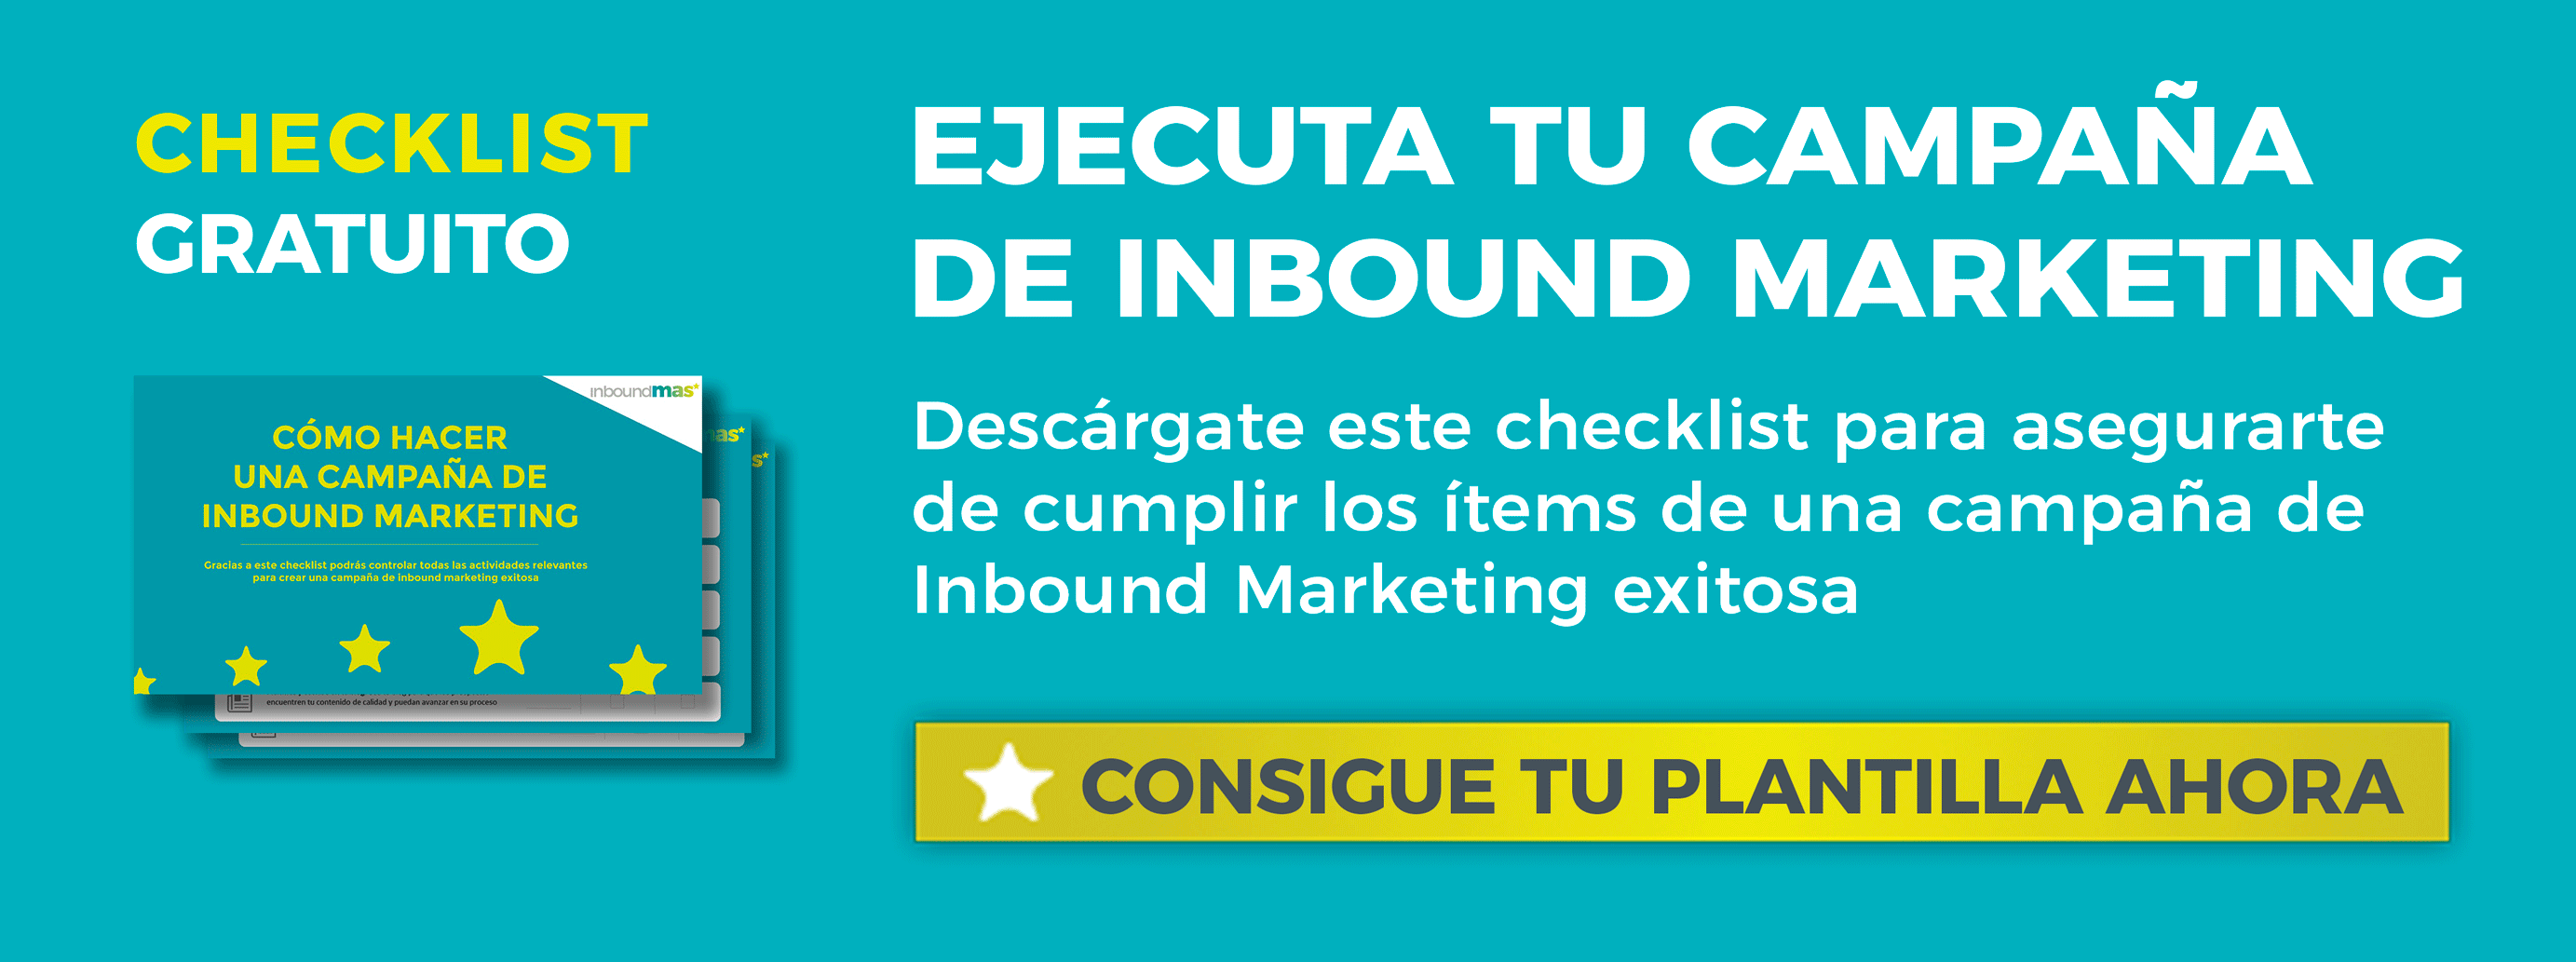 Descarga gratis el checklist de una campaña inbound marketing